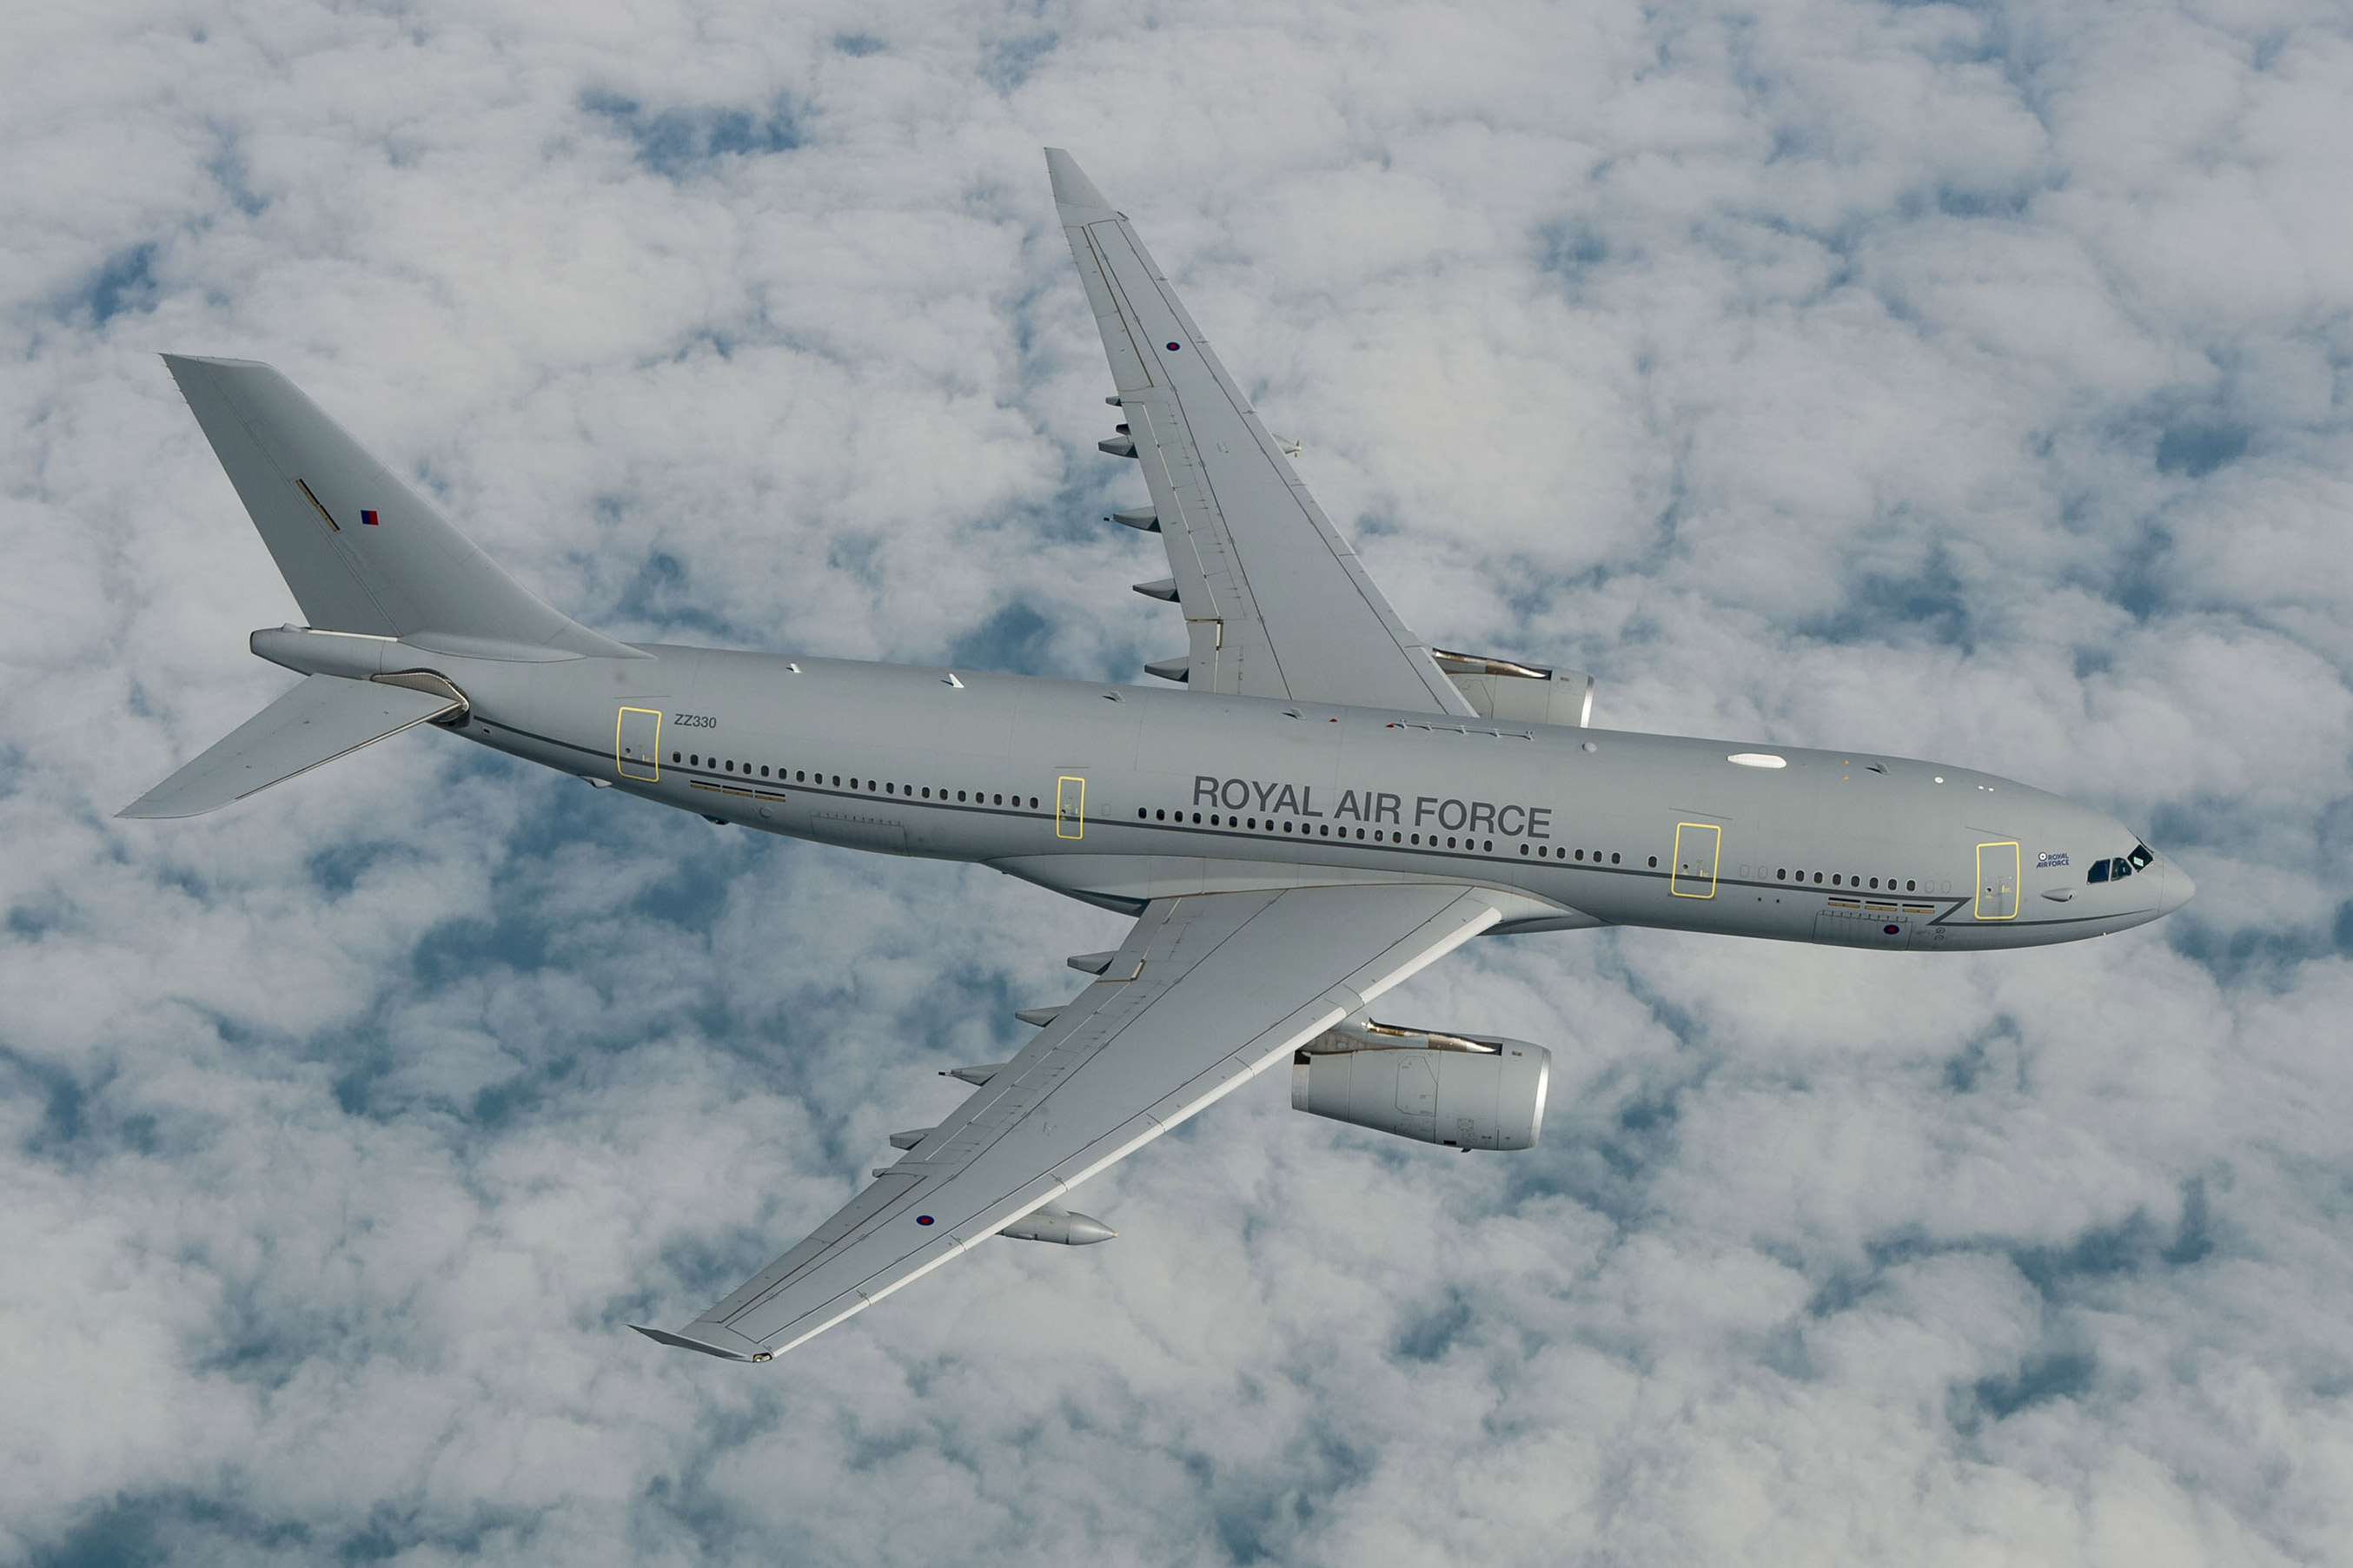 RAF_Airtanker_Airbus_A330_top